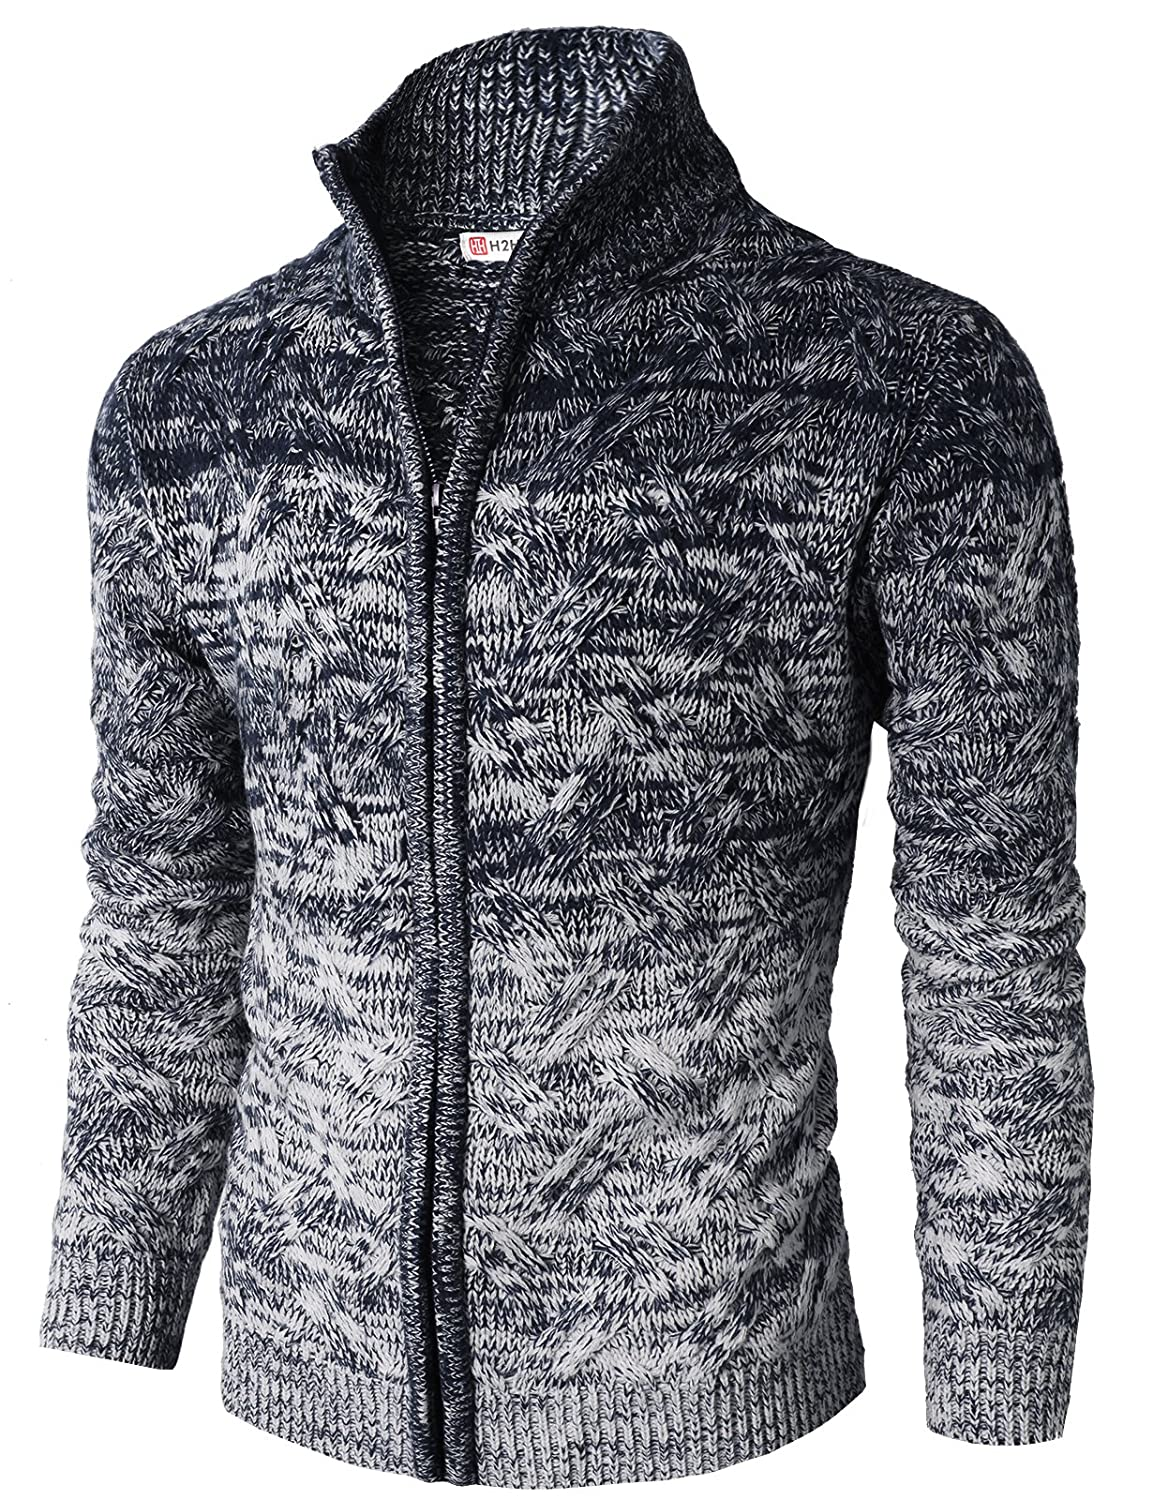 H2H Mens Casual Slim Fit Twisted Knit Zip up Cardigan with Gradation Color